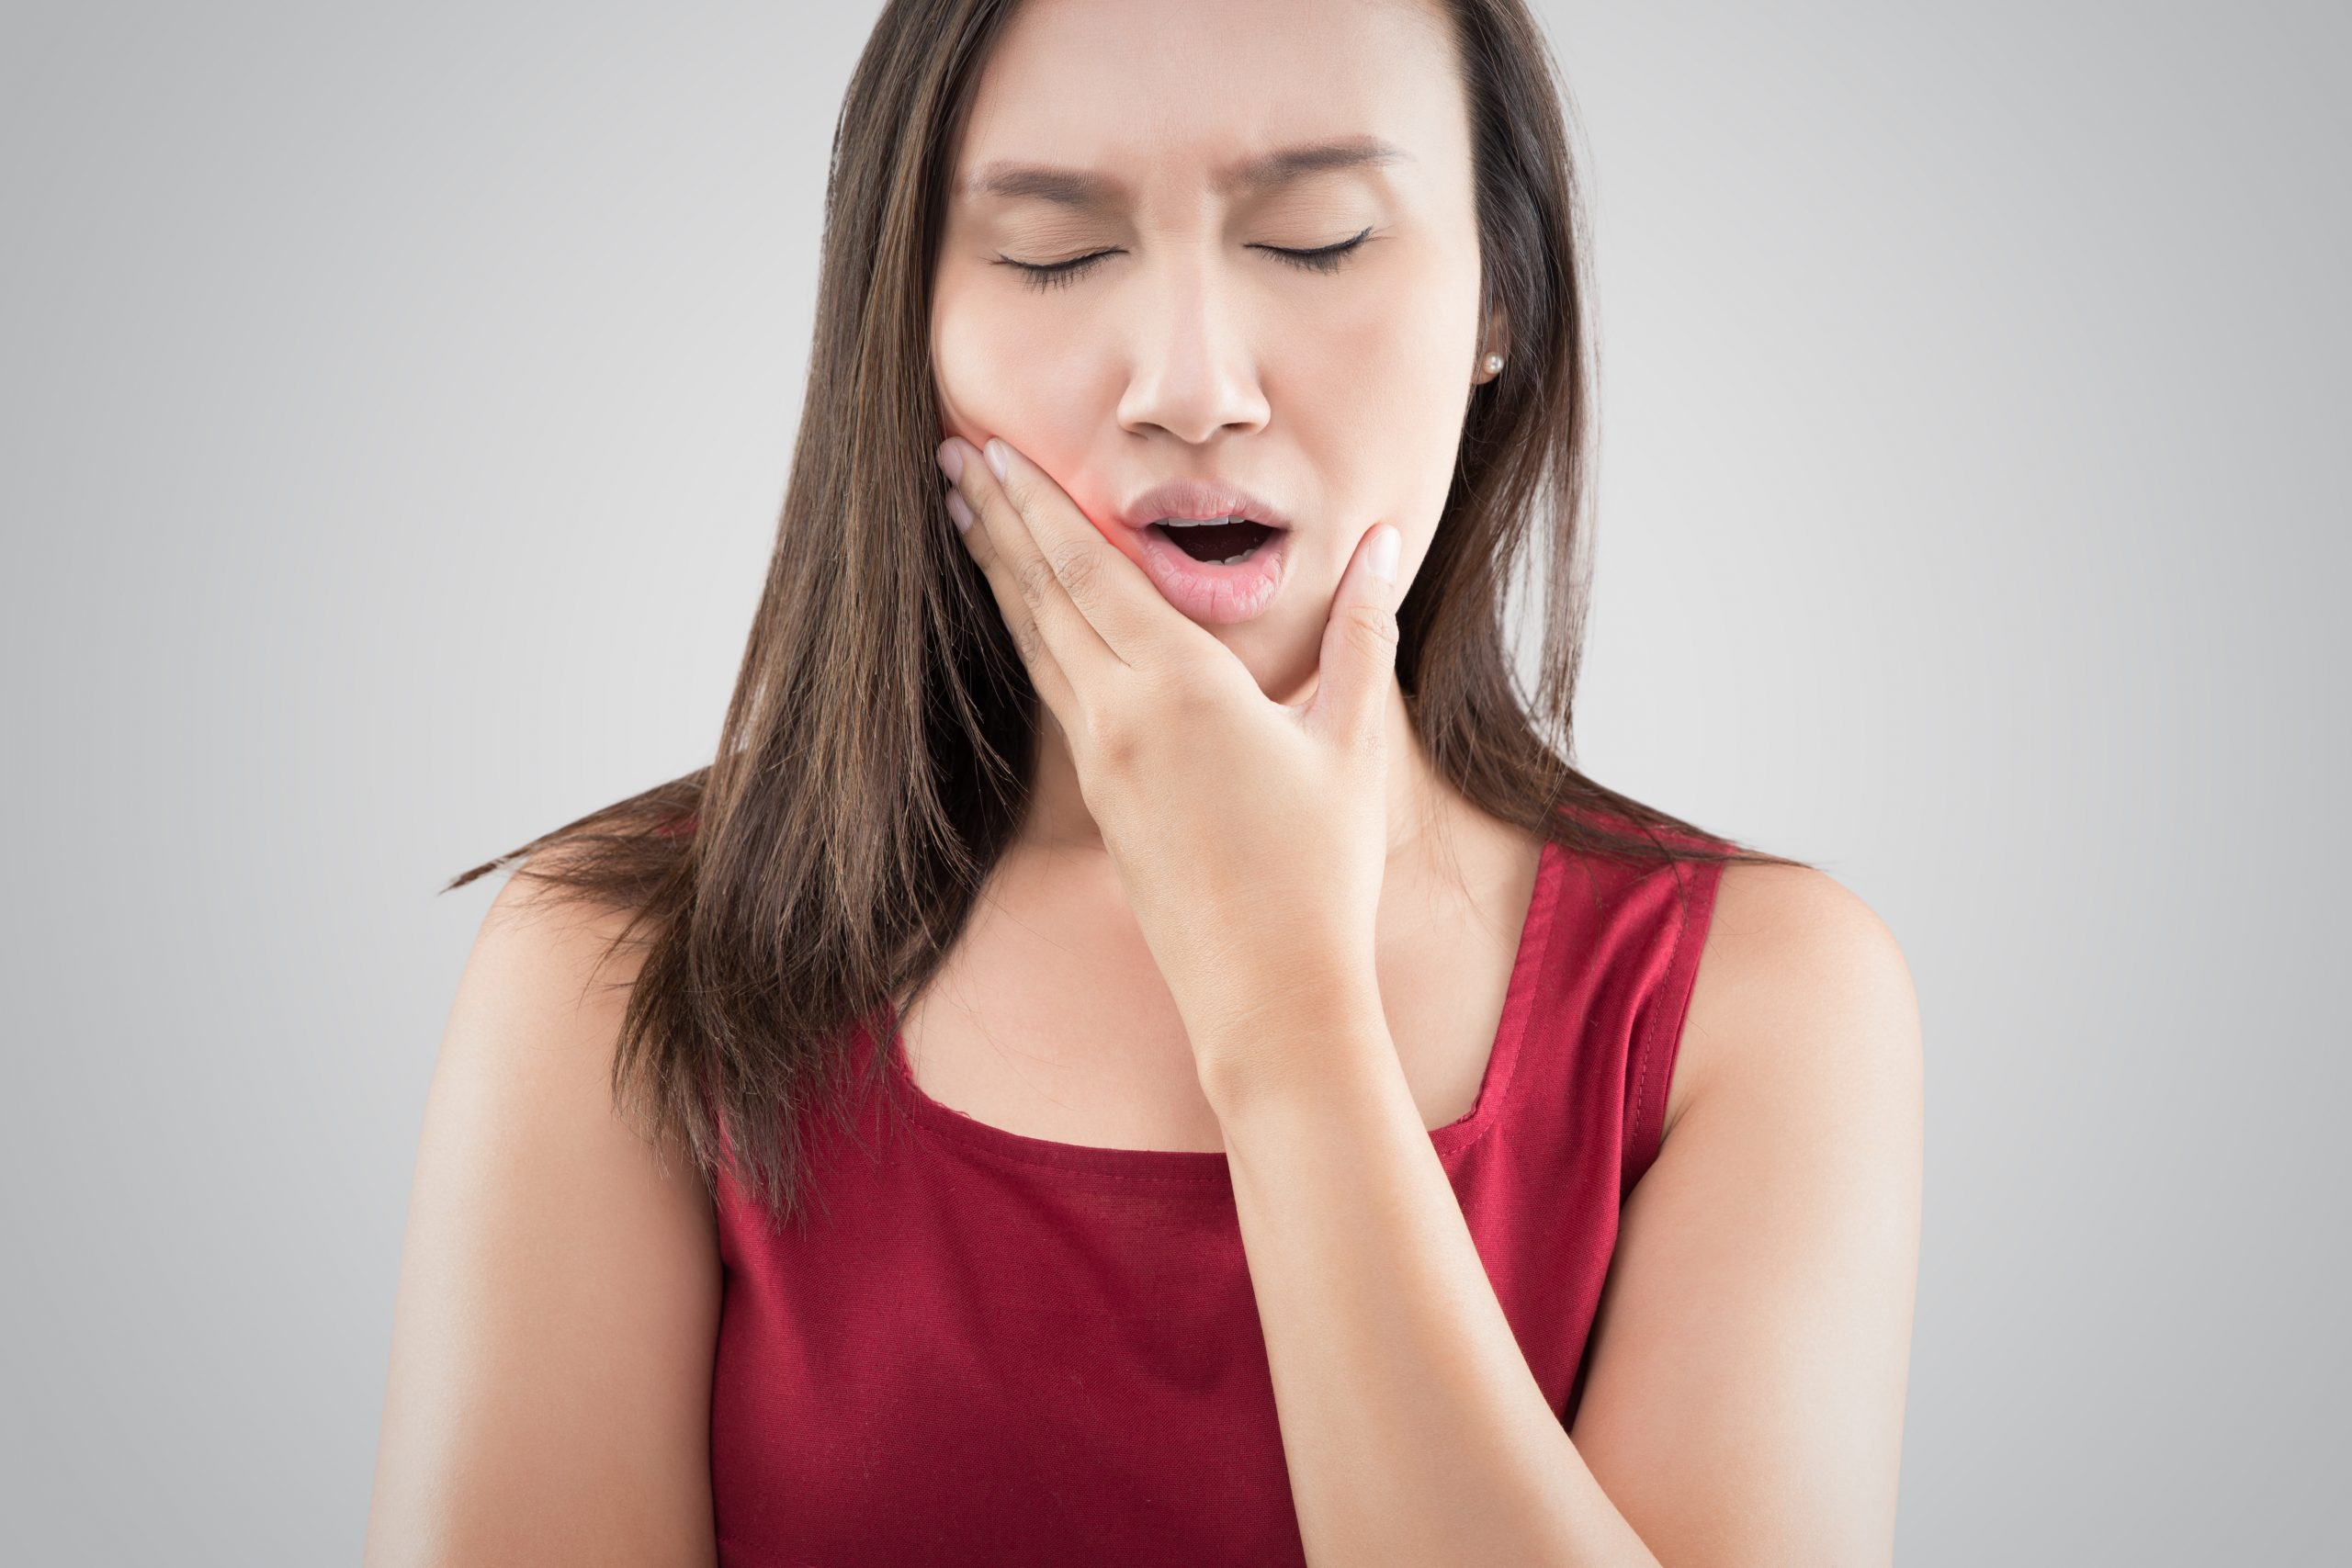 Suffering from a toothache. Beautiful young woman suffering from a toothache while standing against grey background